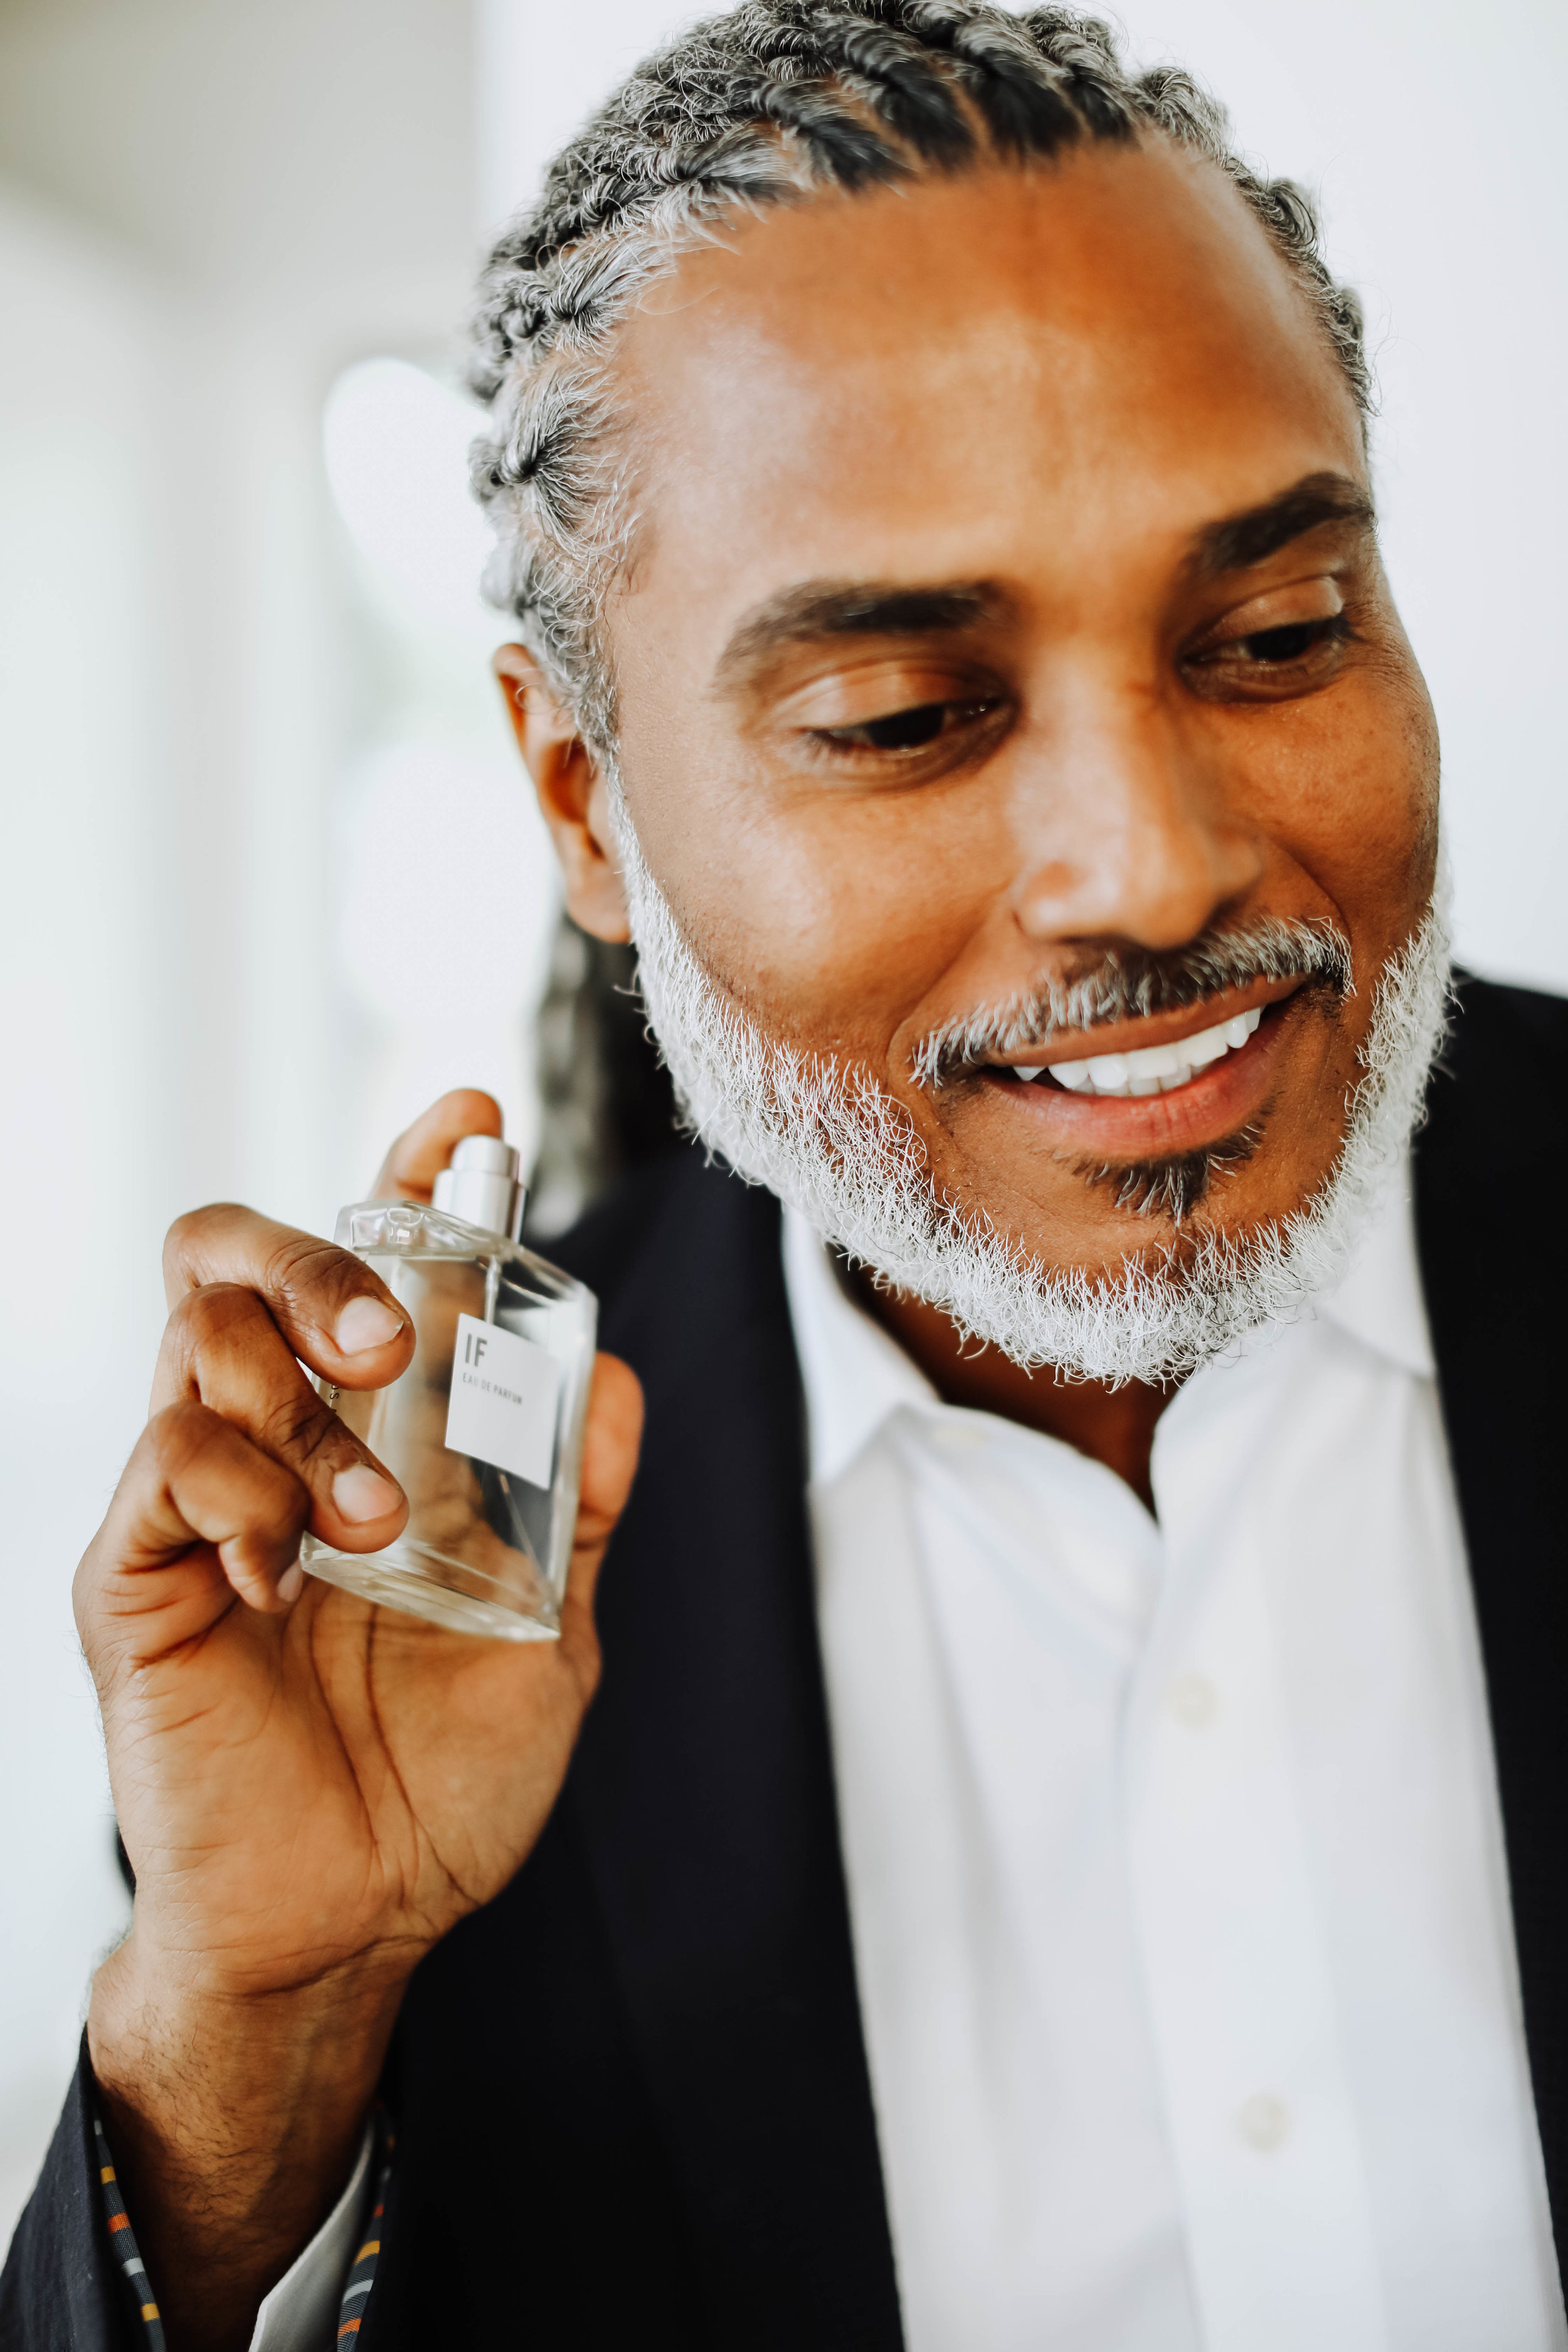 Image of model Eric Cedeno with the IF fragrance from Apothia LA